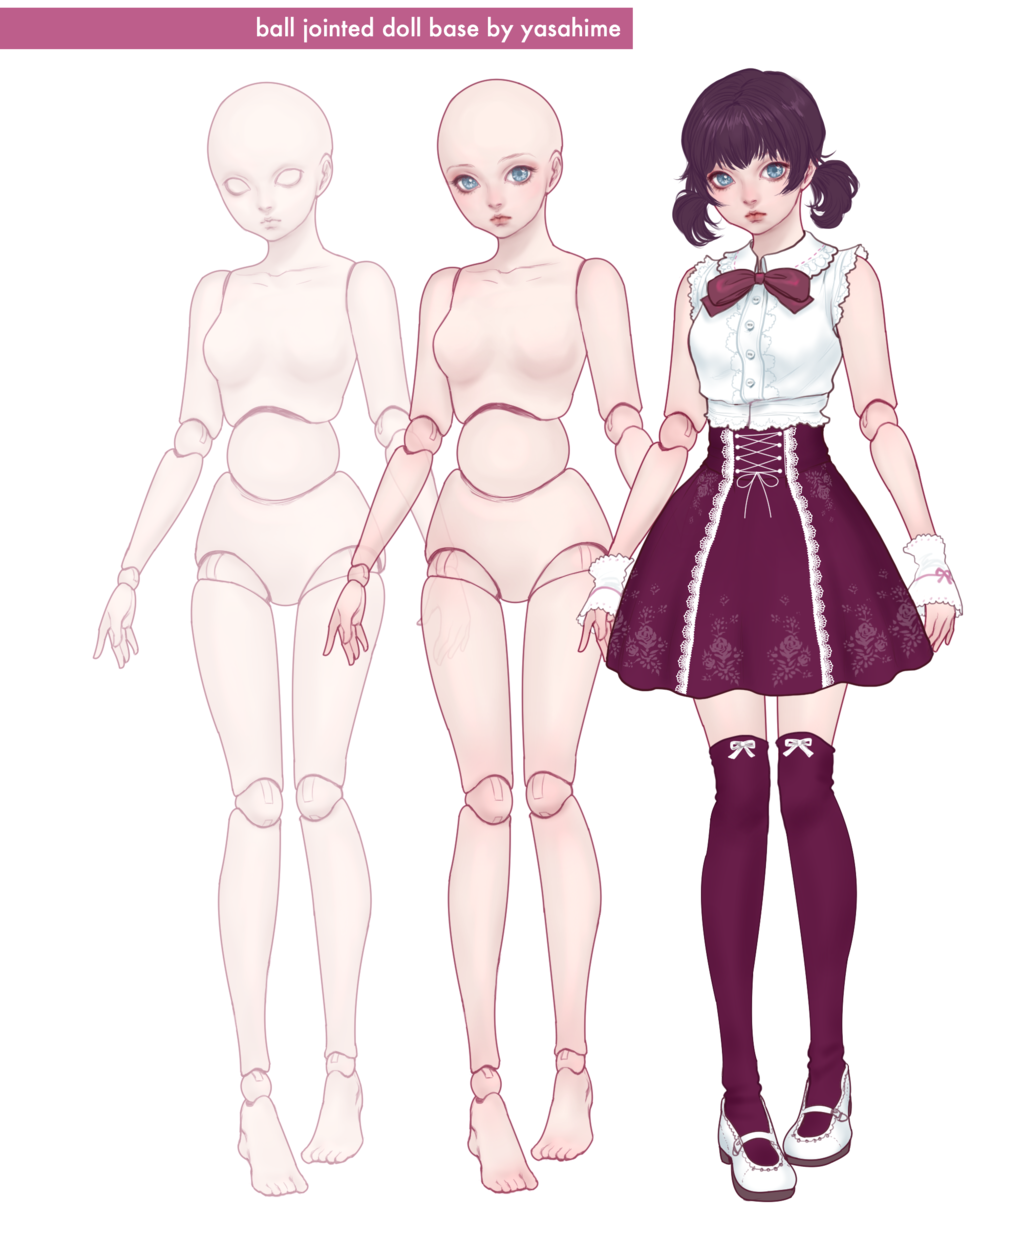 Bjd Character Base By Jdarnell On Deviantart Character Base Character Design Doll Drawing